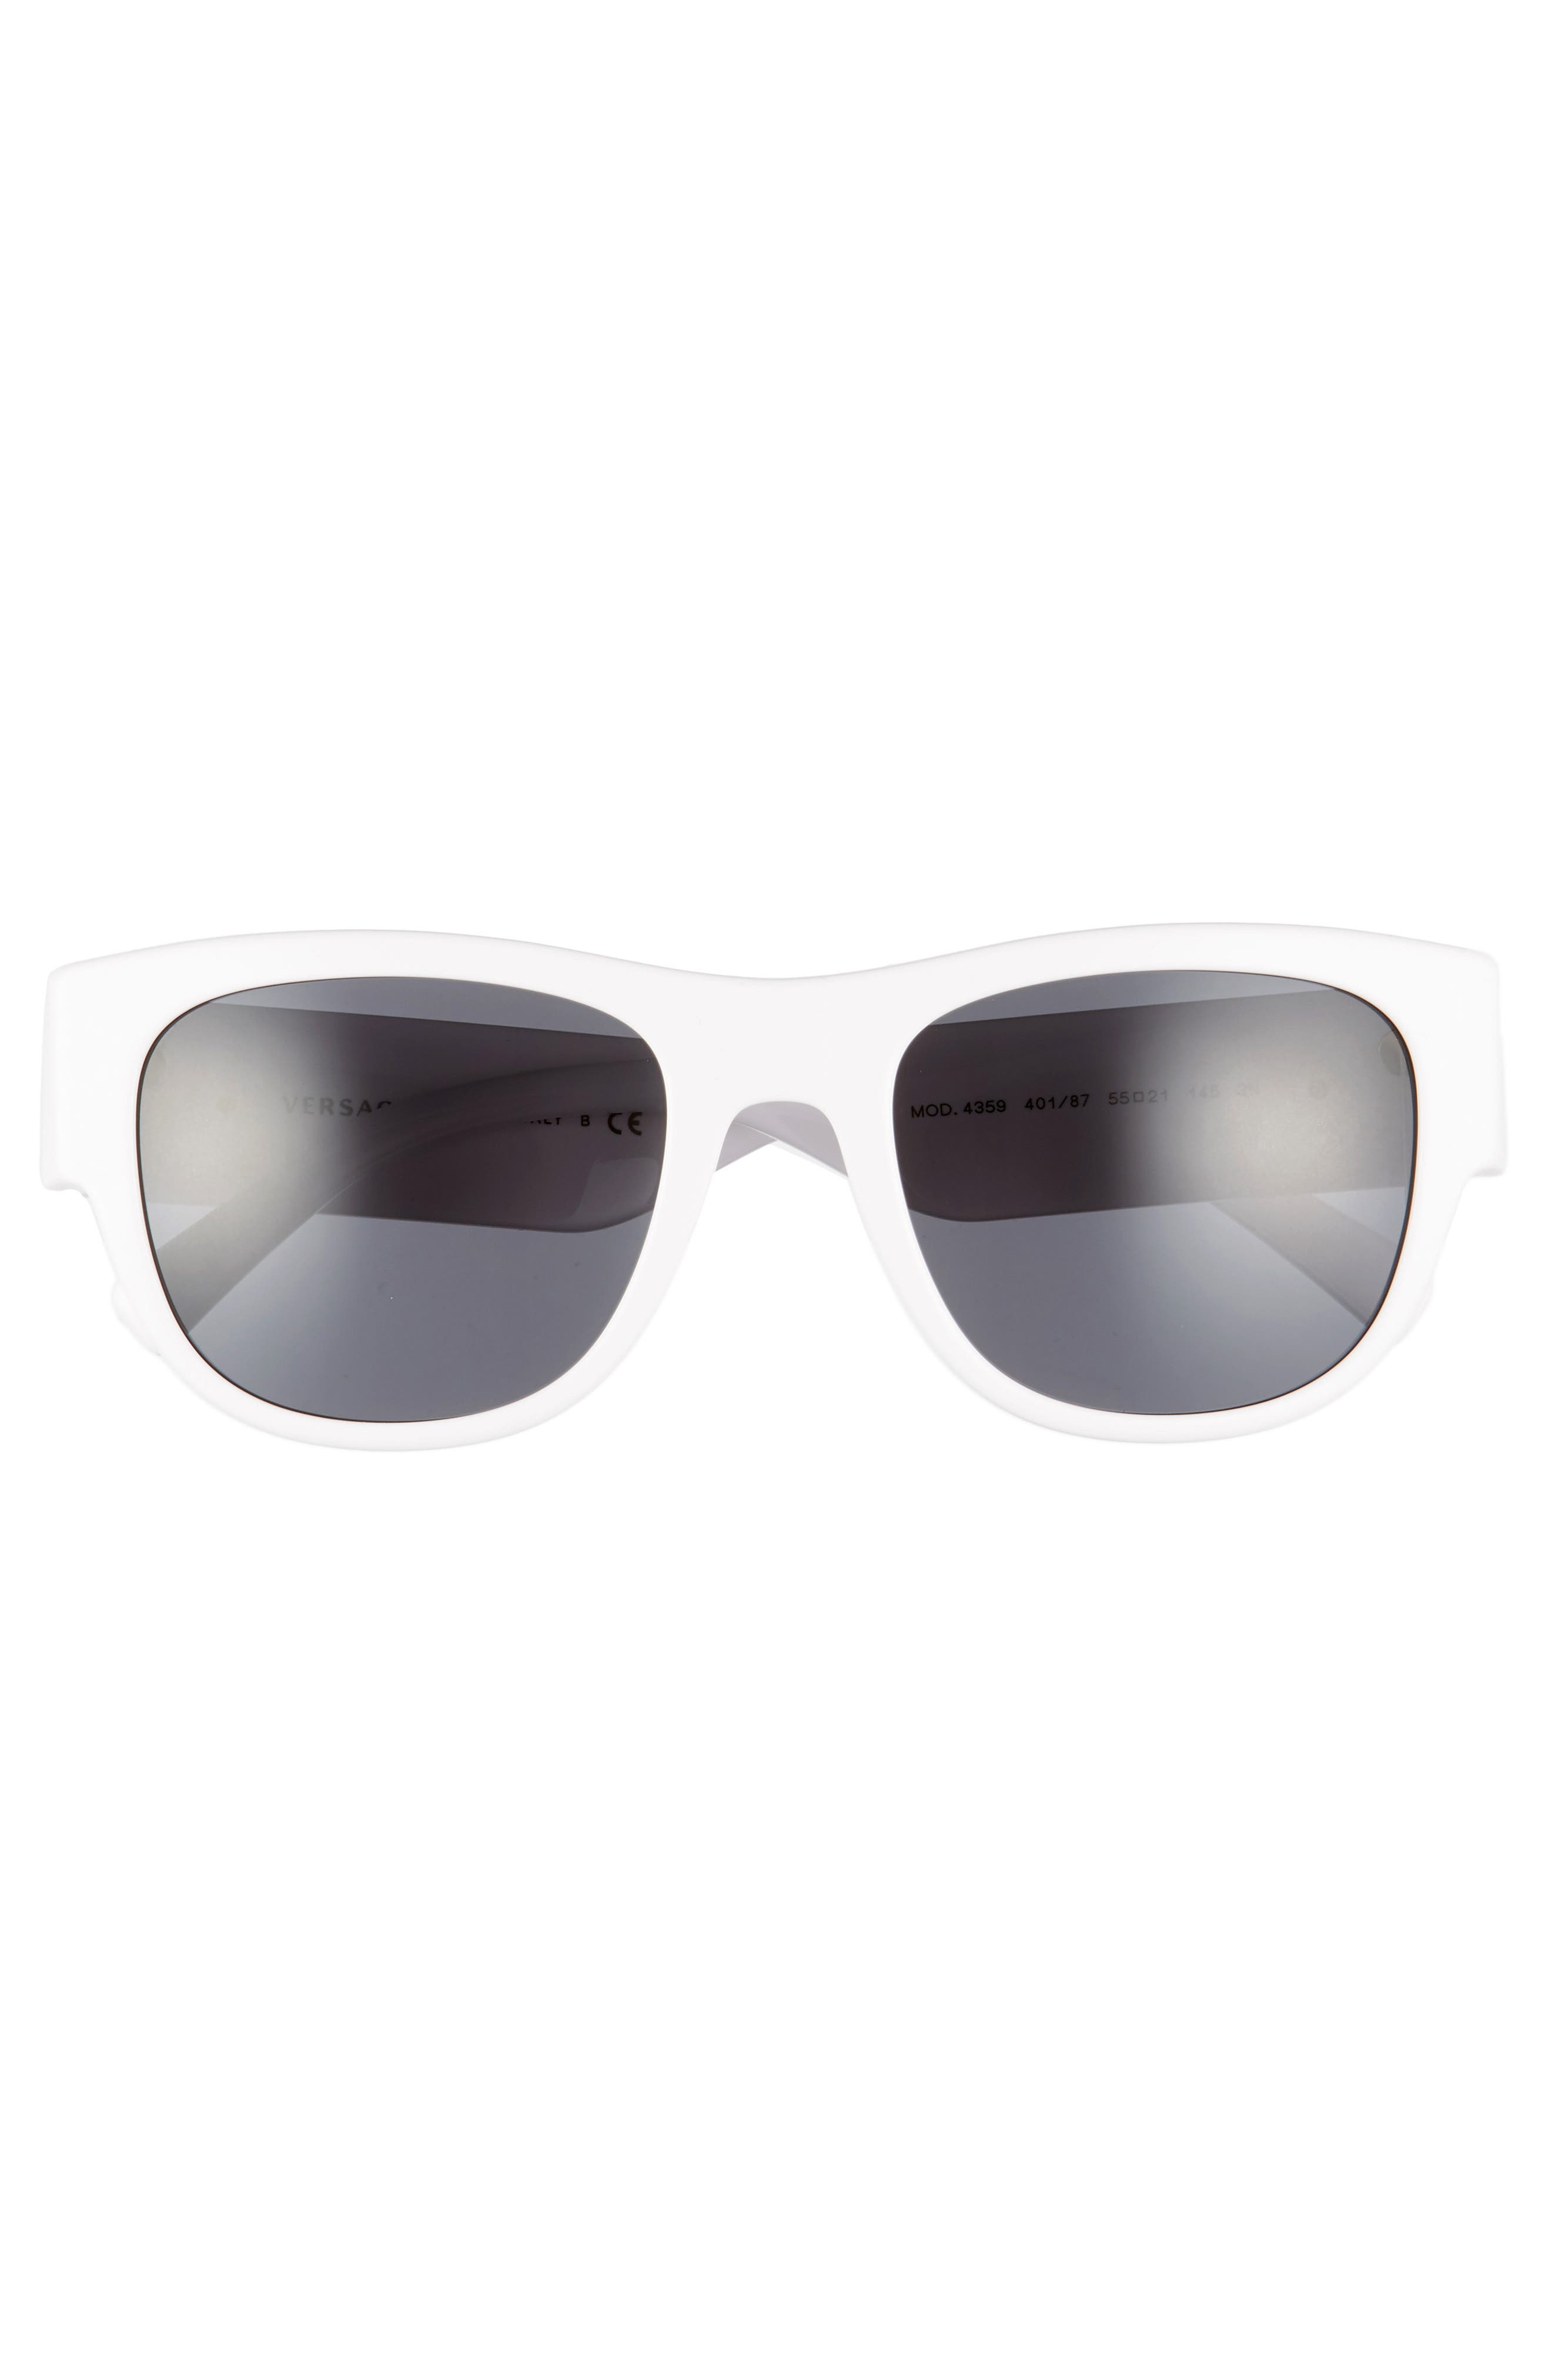 55mm Square Sunglasses,                             Alternate thumbnail 3, color,                             WHITE/ GREY SOLID